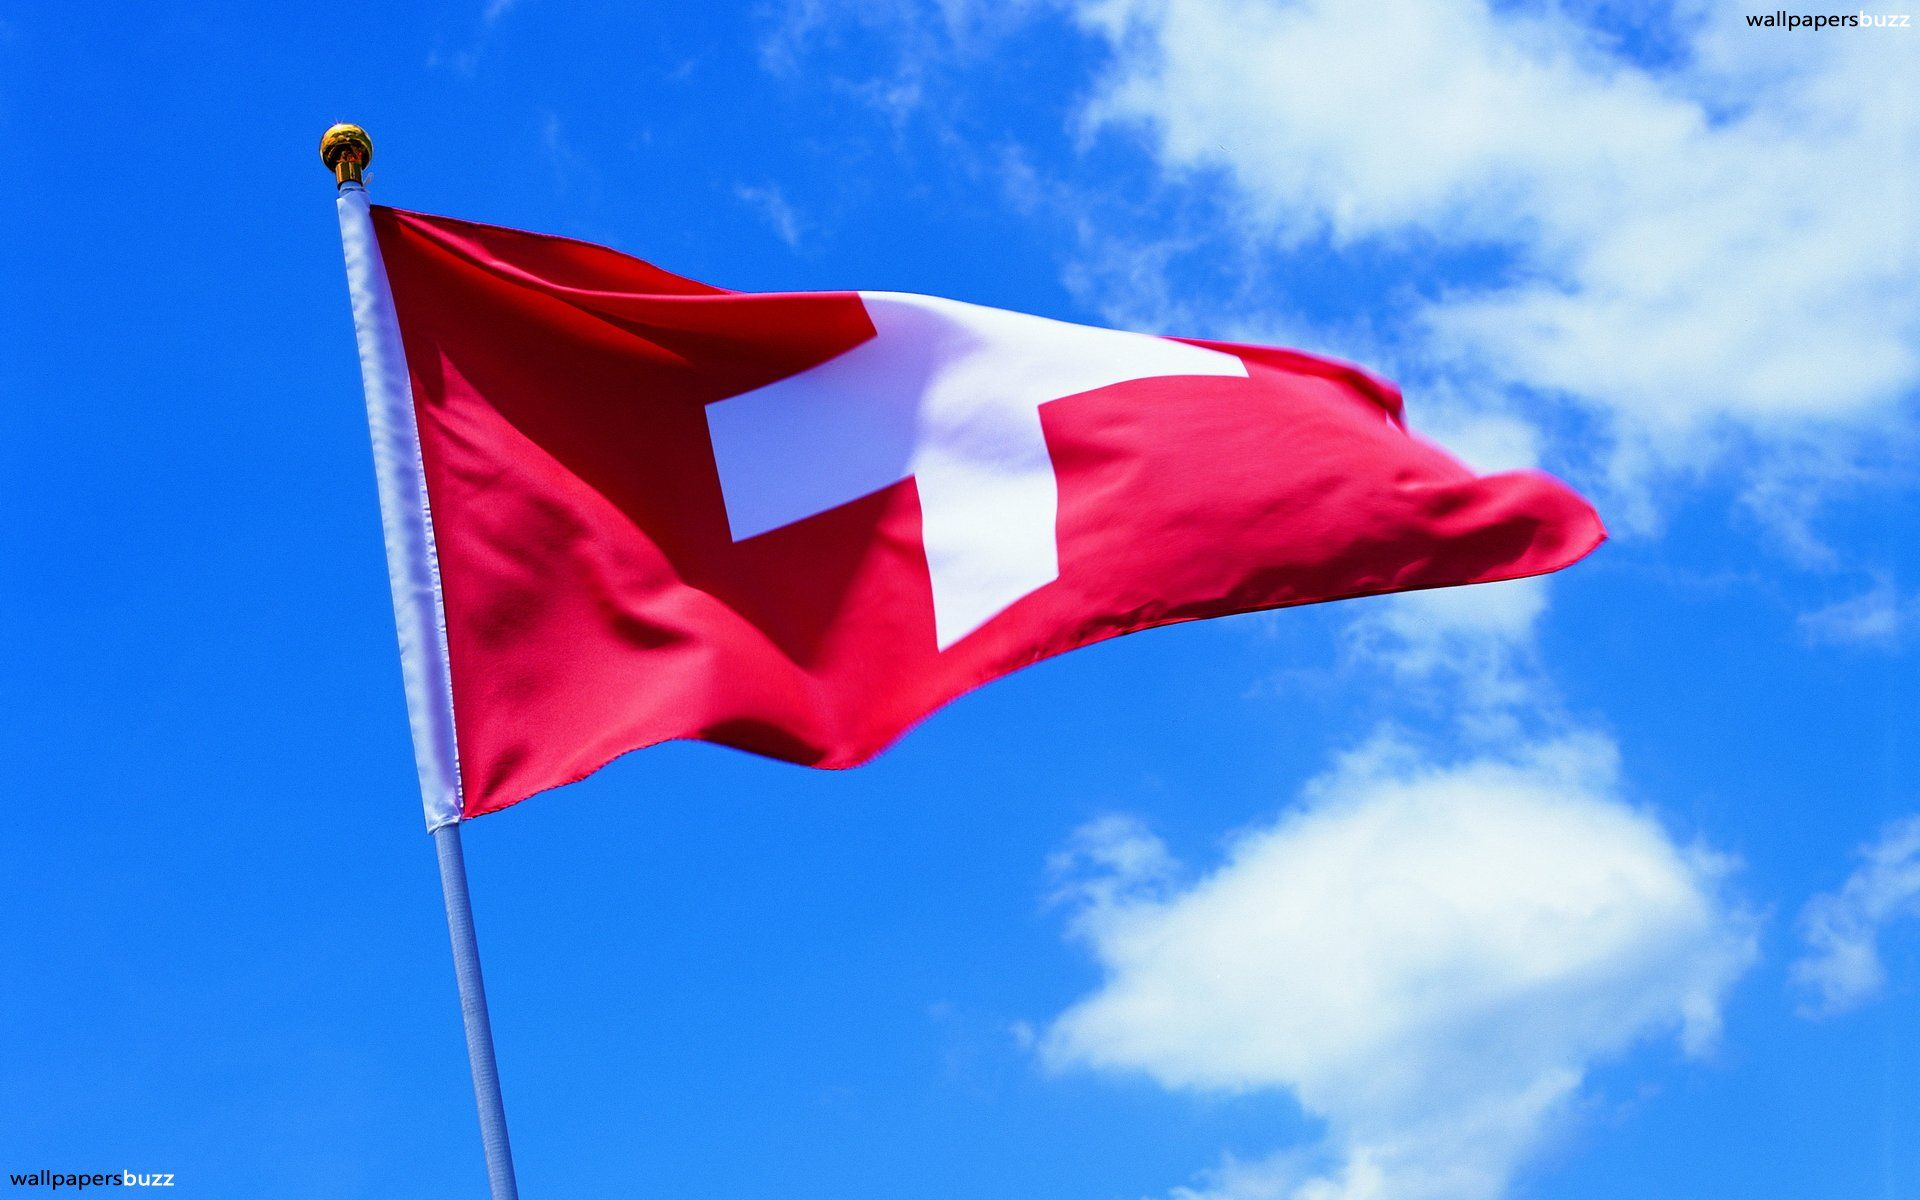 1920x1200 The flag of Switzerland on the flagpole HD Wallpaper